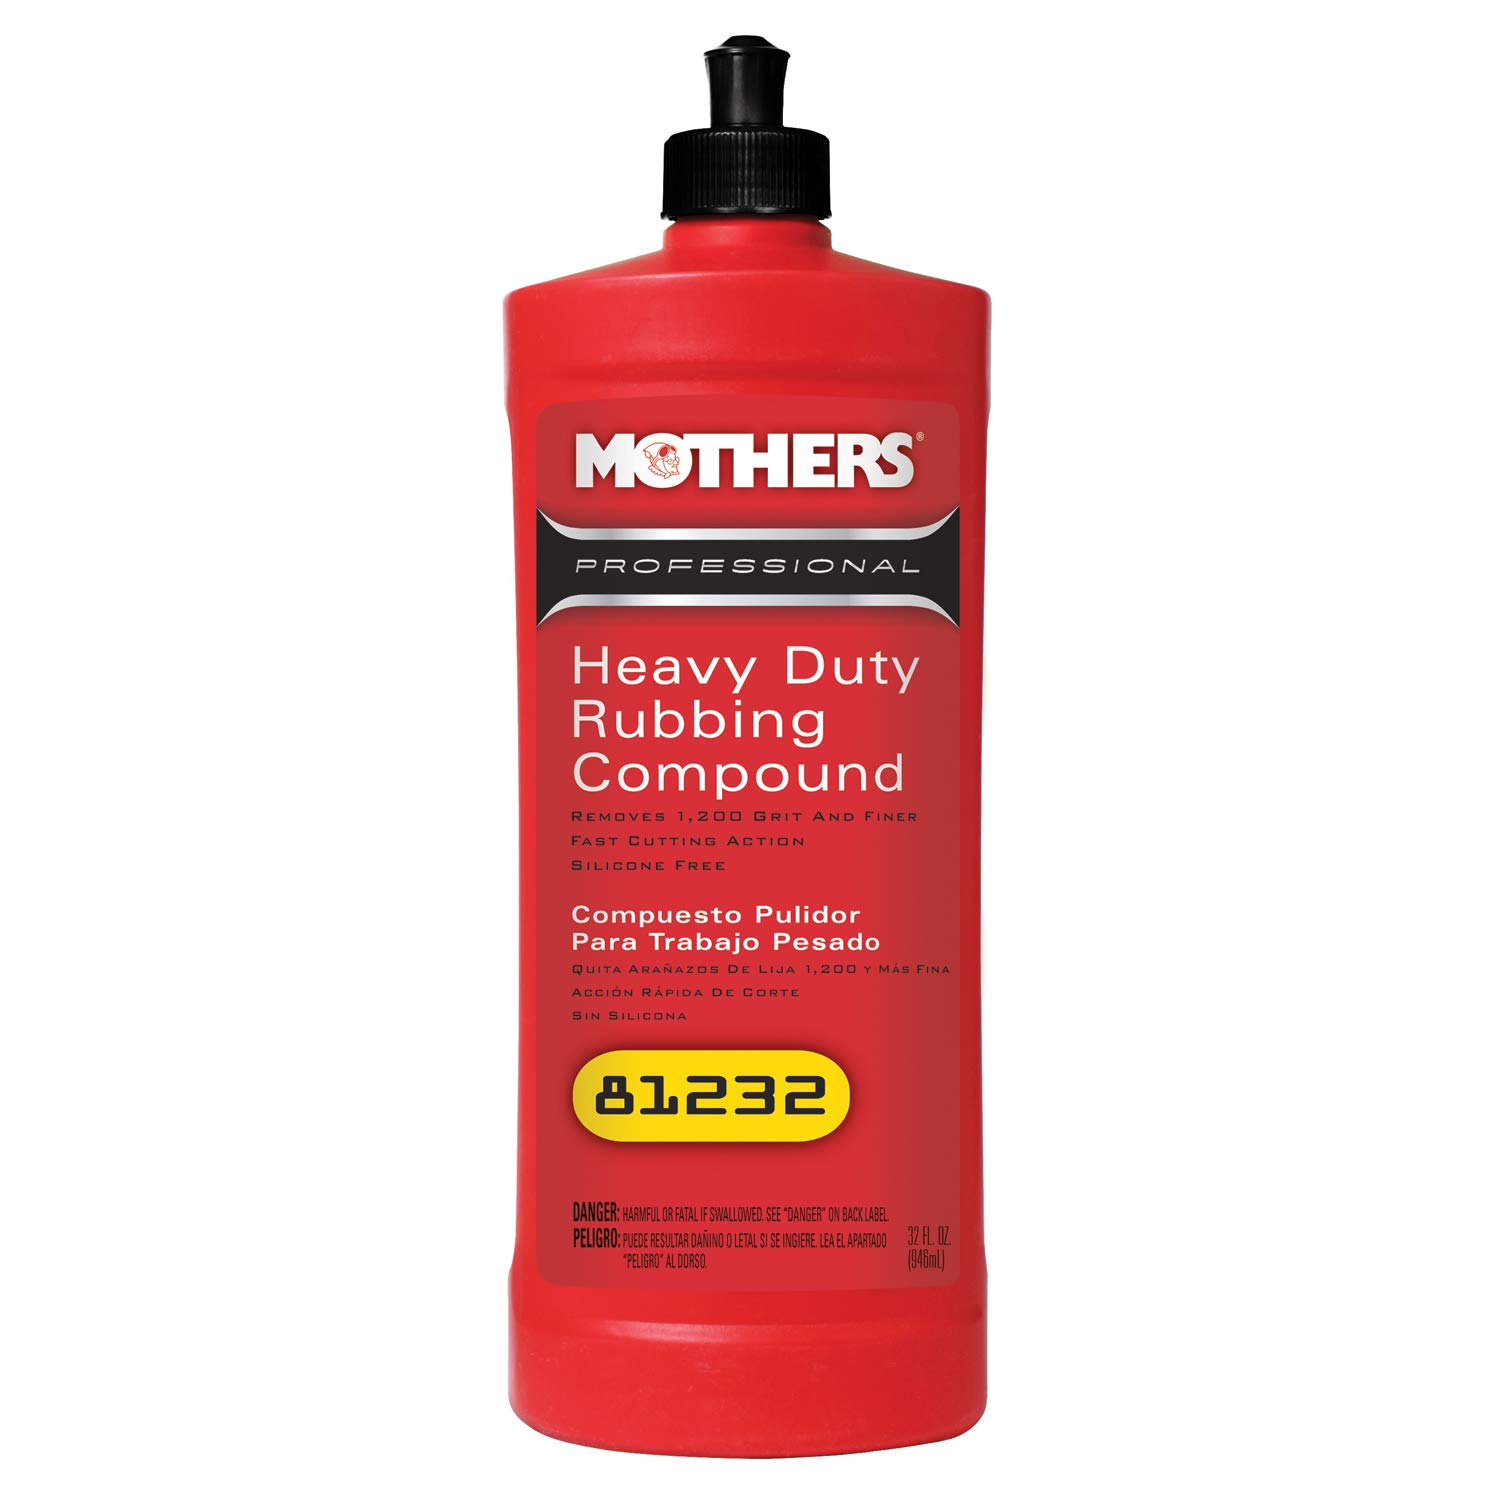 Mothers 81232-6 Professional Heavy Duty Rubbing Compound - 32 oz., (Pack of 6)